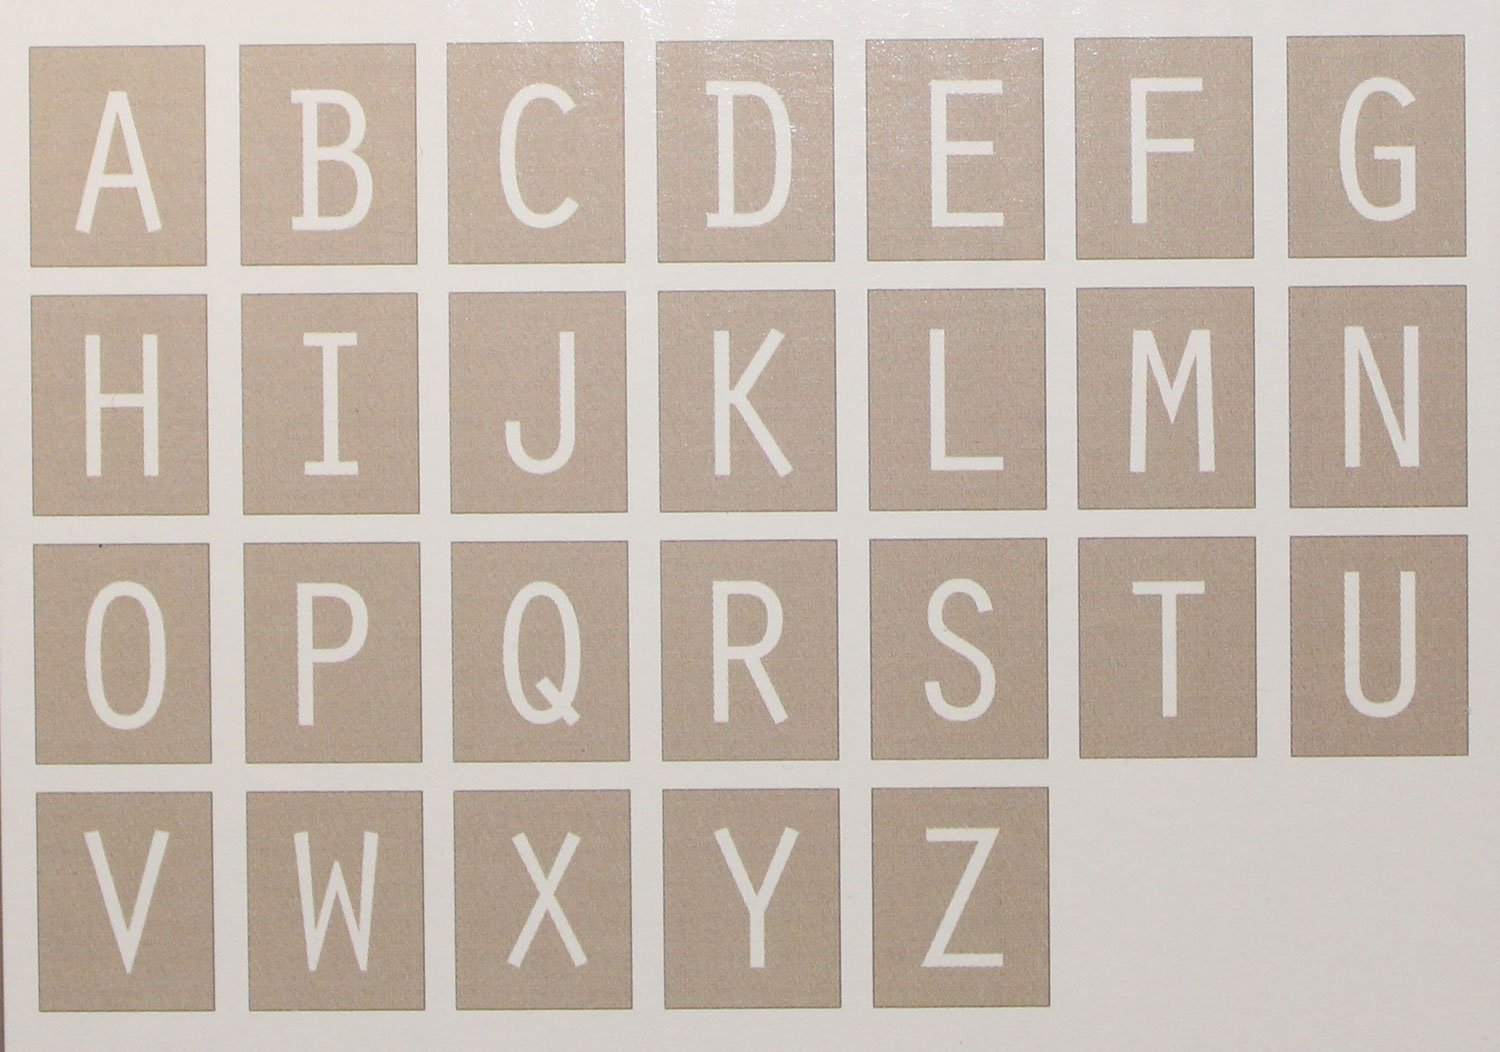 Aqua Framed White on Taupe Hanging Wall Letters, All 26 Letters Included by The Peanut Shell (Image #2)